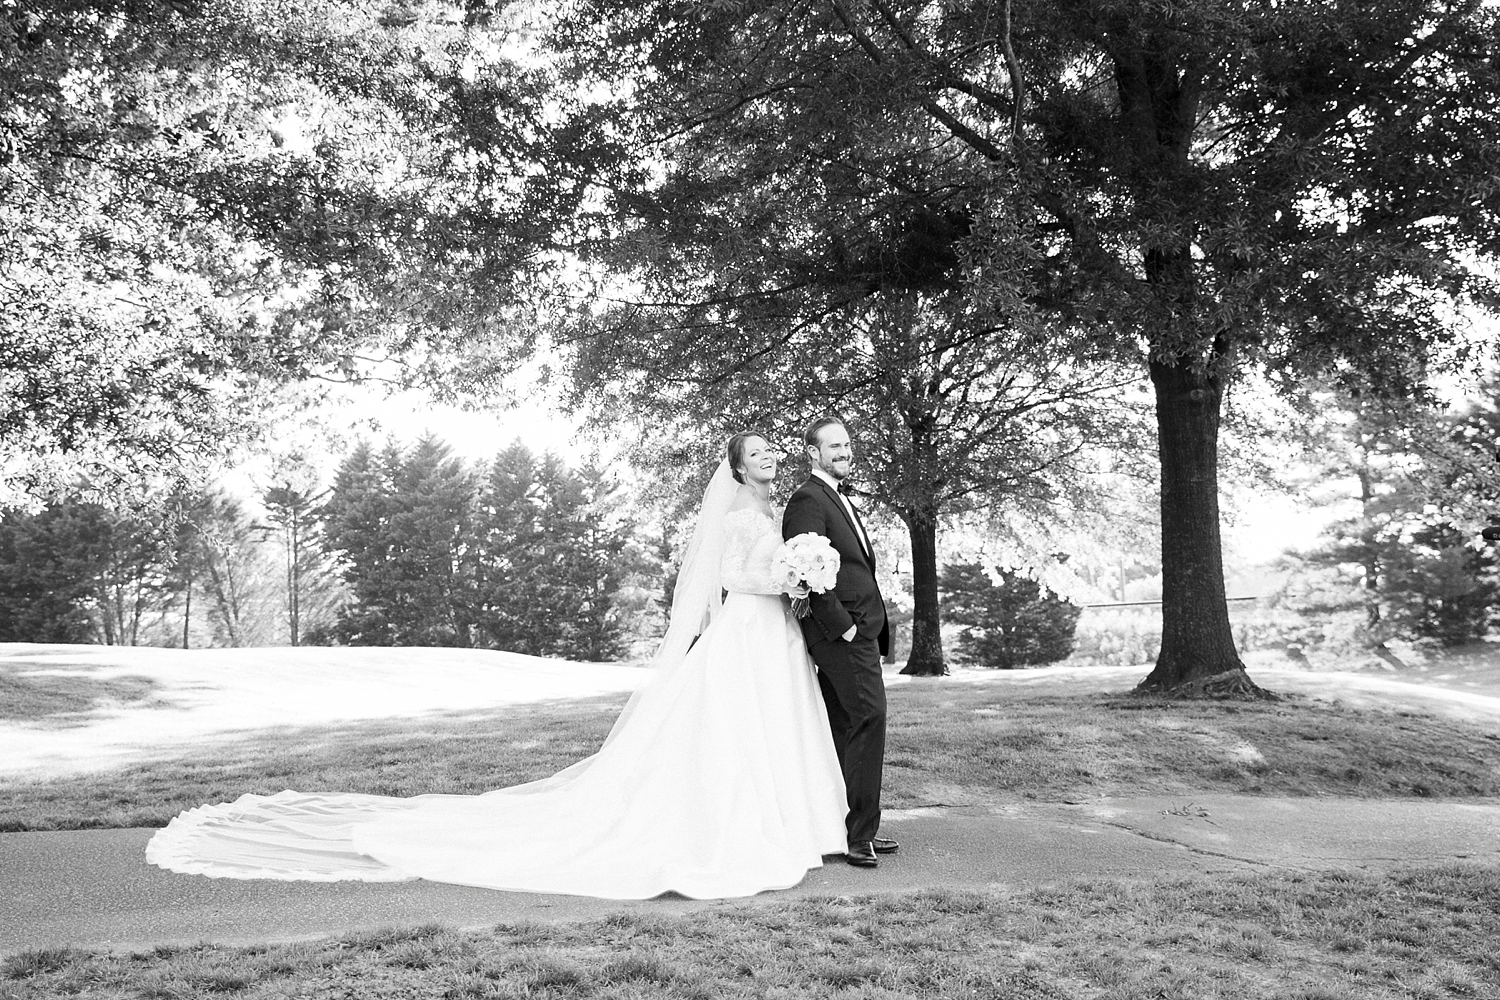 wedding-danville-golf-club-va_0046.jpg